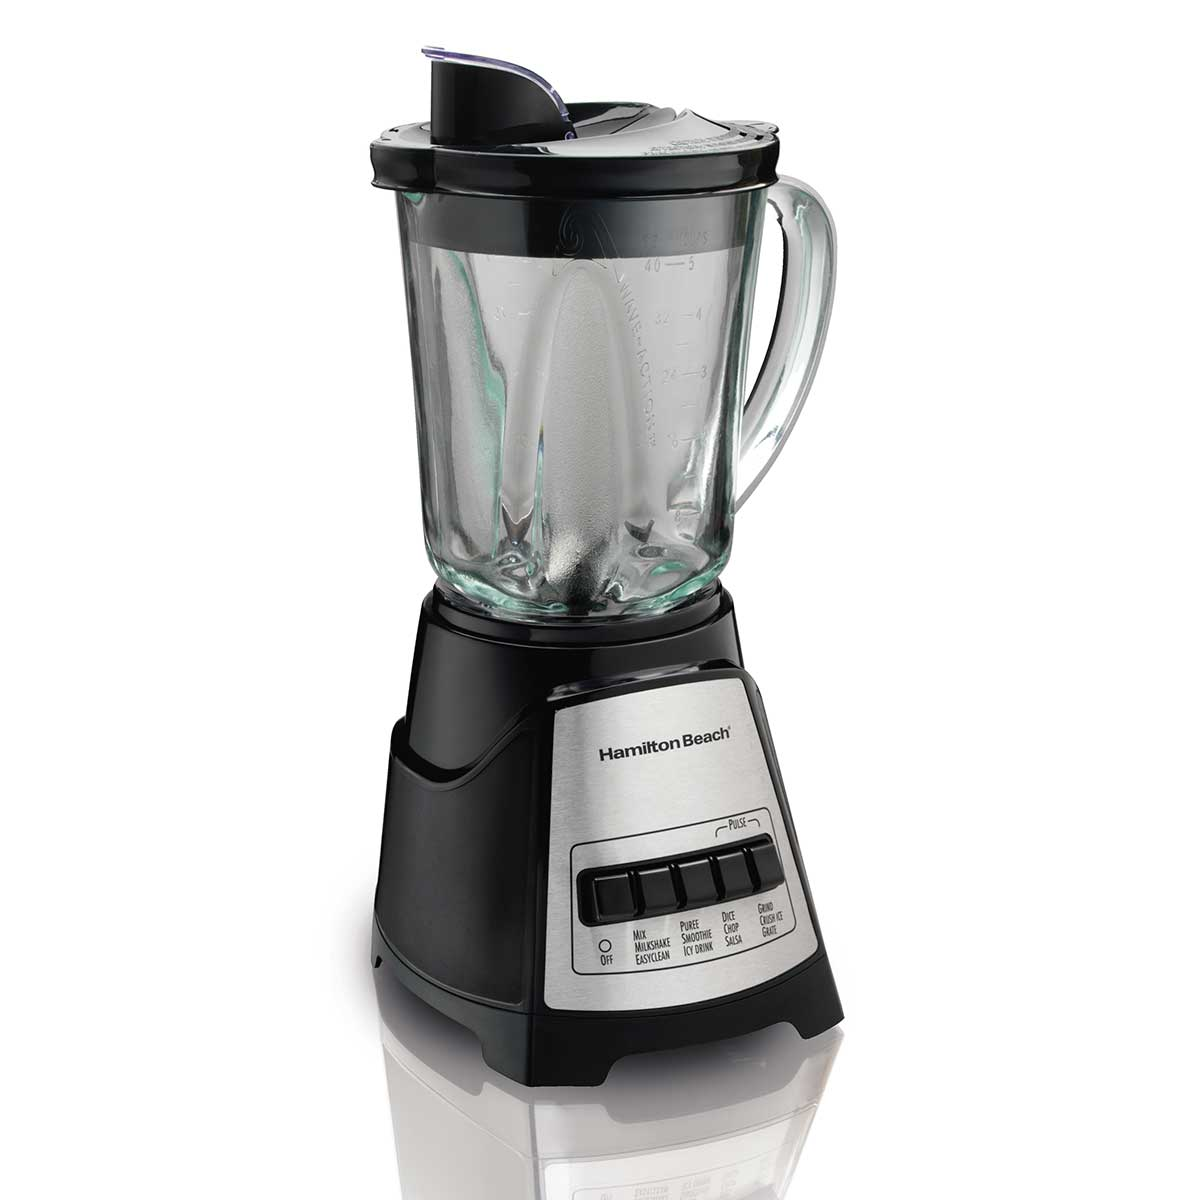 Power Elite® Multi-Function Blender with Mess-free 40oz Glass Jar, 700W Black & Stainless (58148)